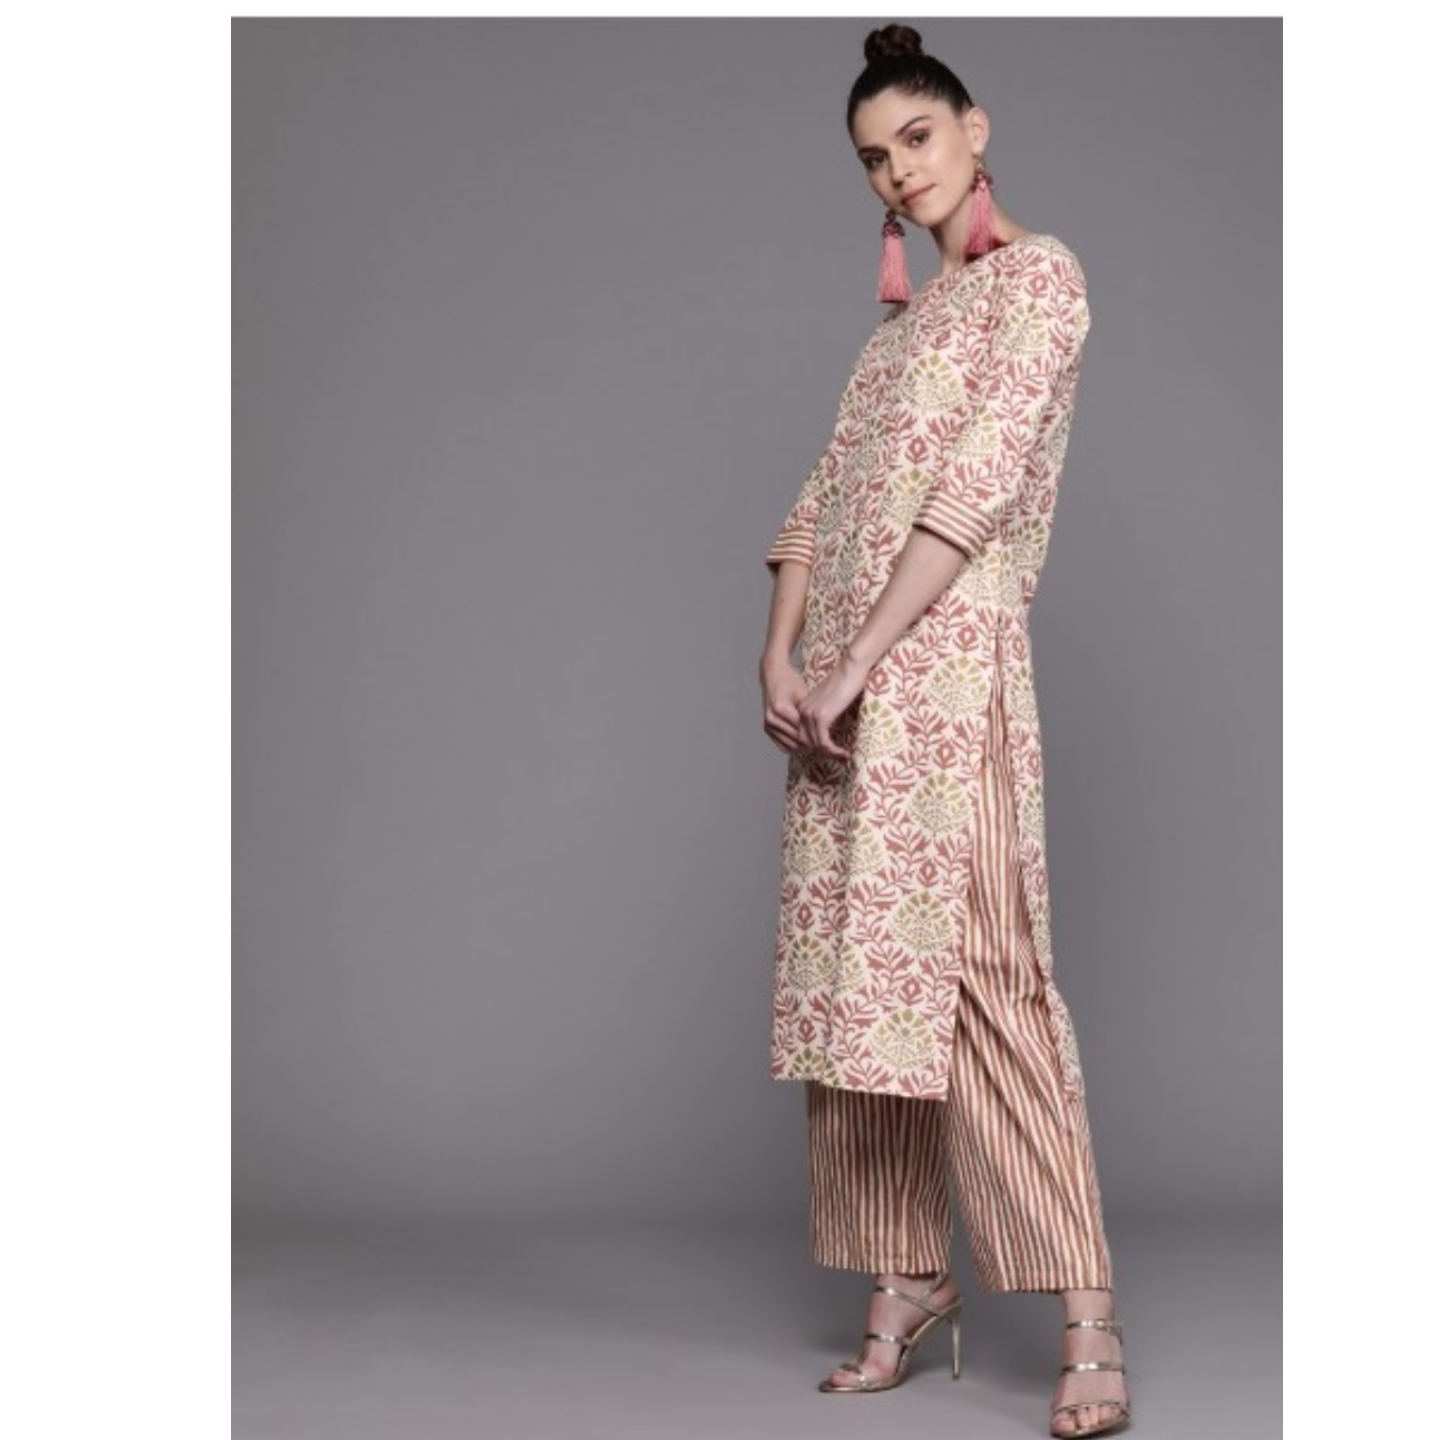 Off-White & Dusty Pink Printed Kurta With Palazzos & Dupatta